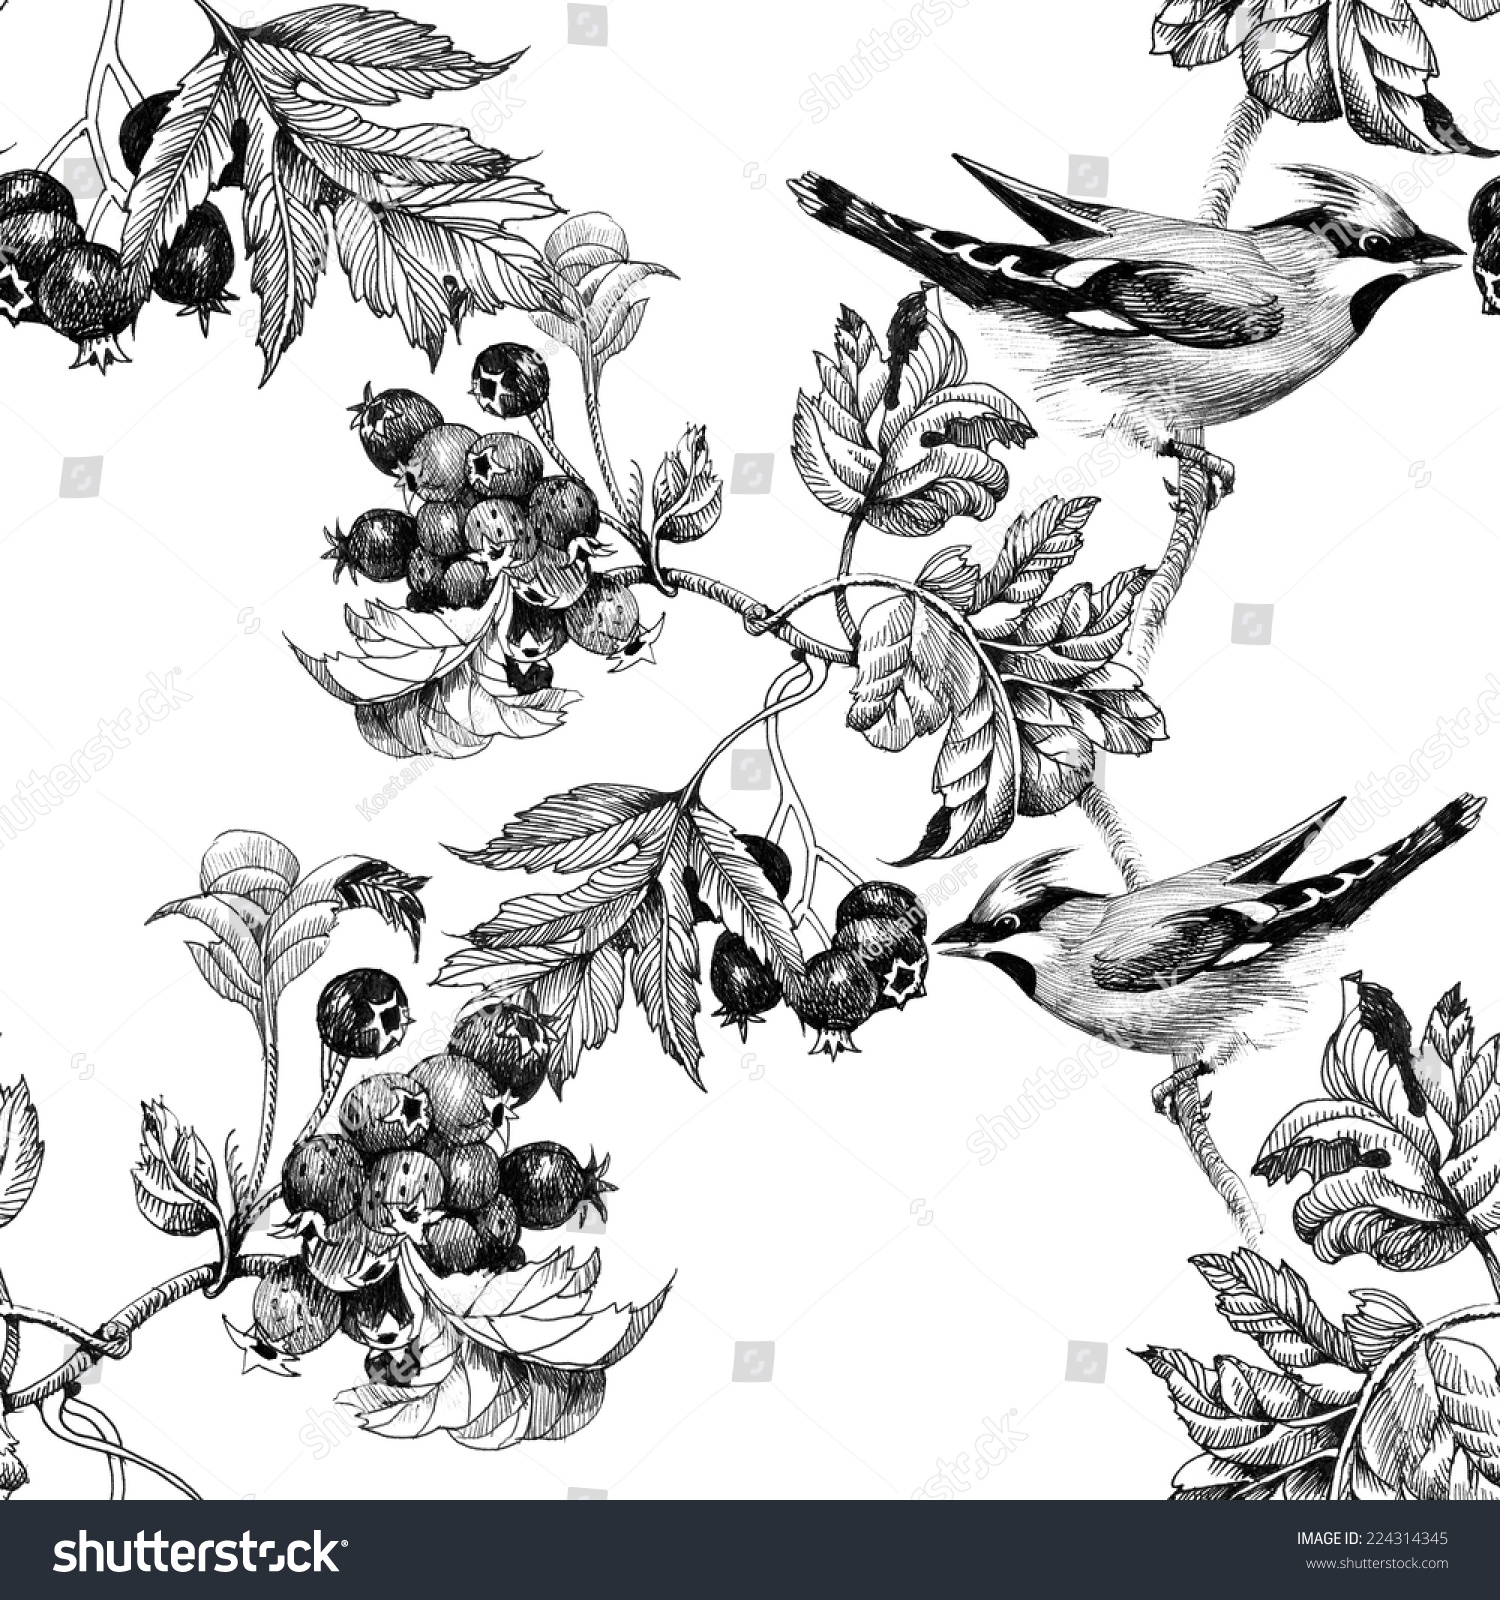 Drawing of beautiful birds and flowers seamless pattern on white background vector illustration